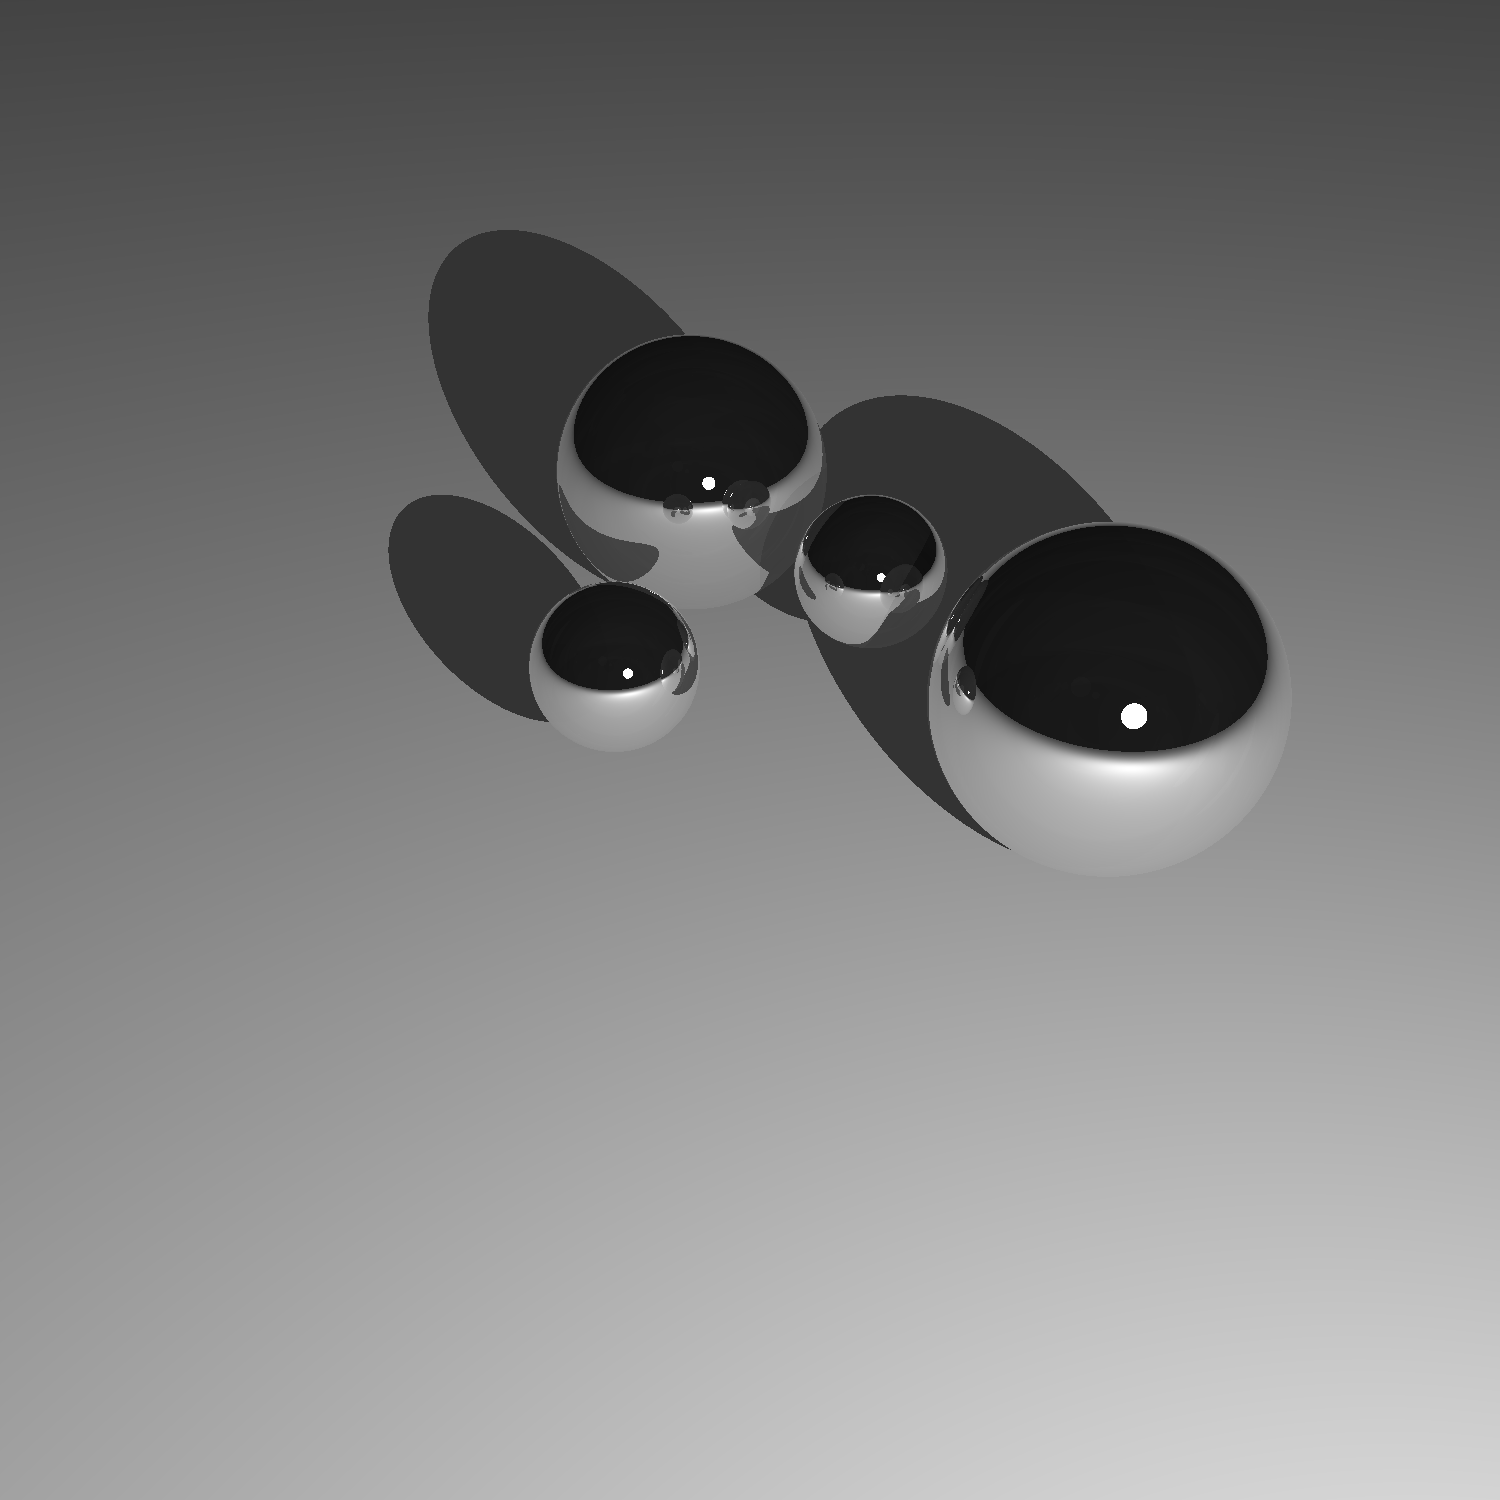 attachment:Spheres_tachyon_wiki.png